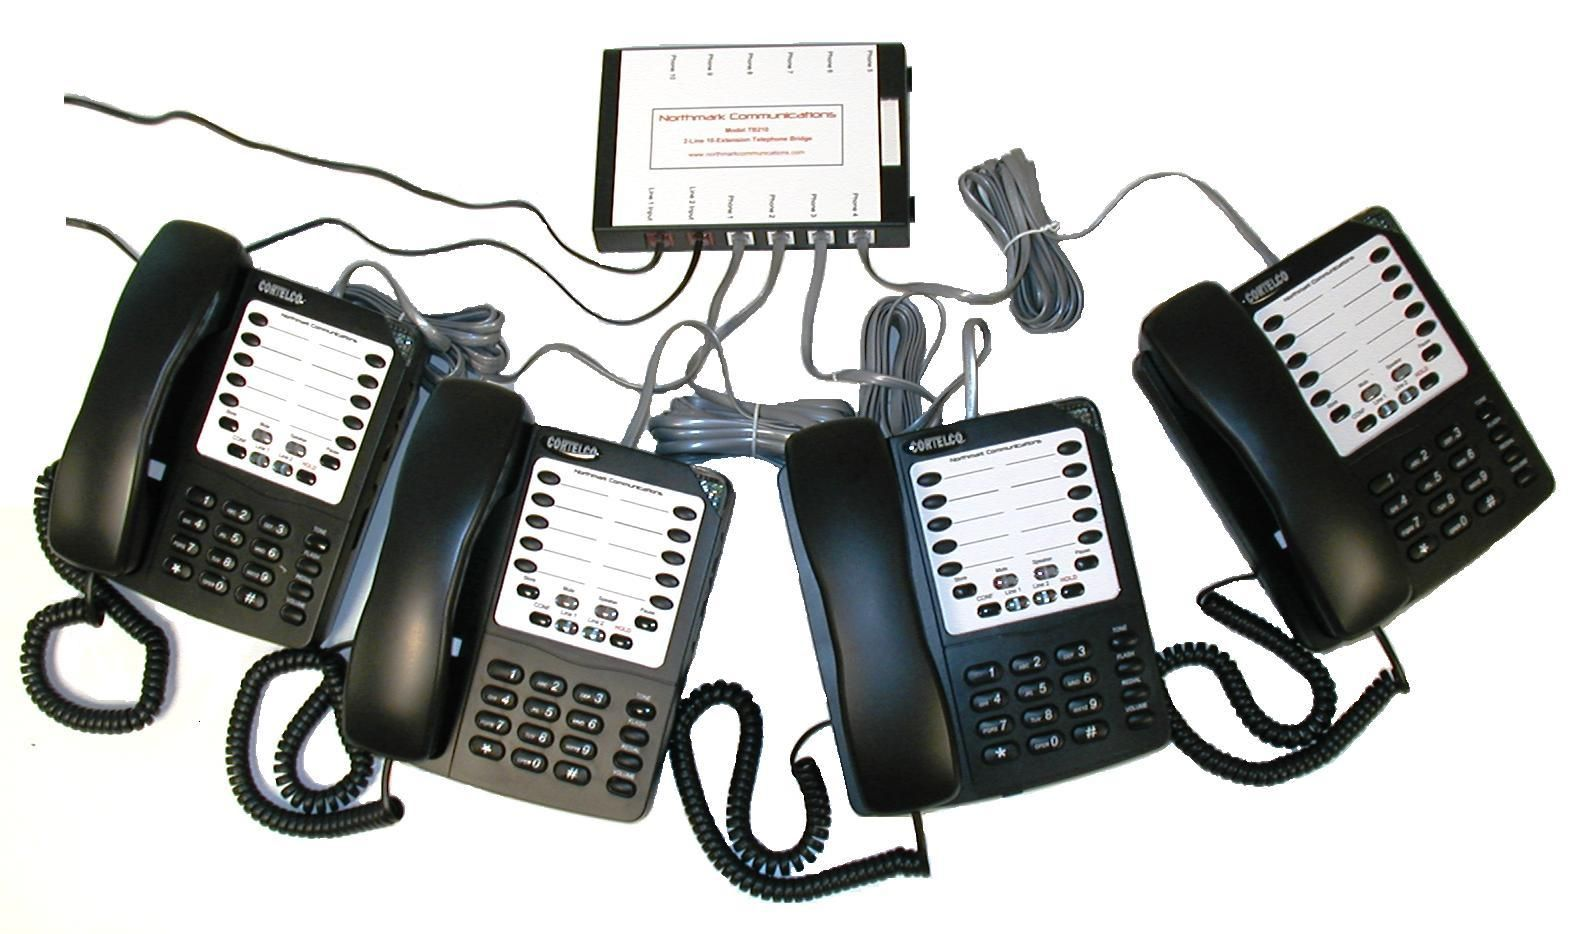 Office Phone Command Phones Offer Best Telephone Systems And We Aim To Provide You